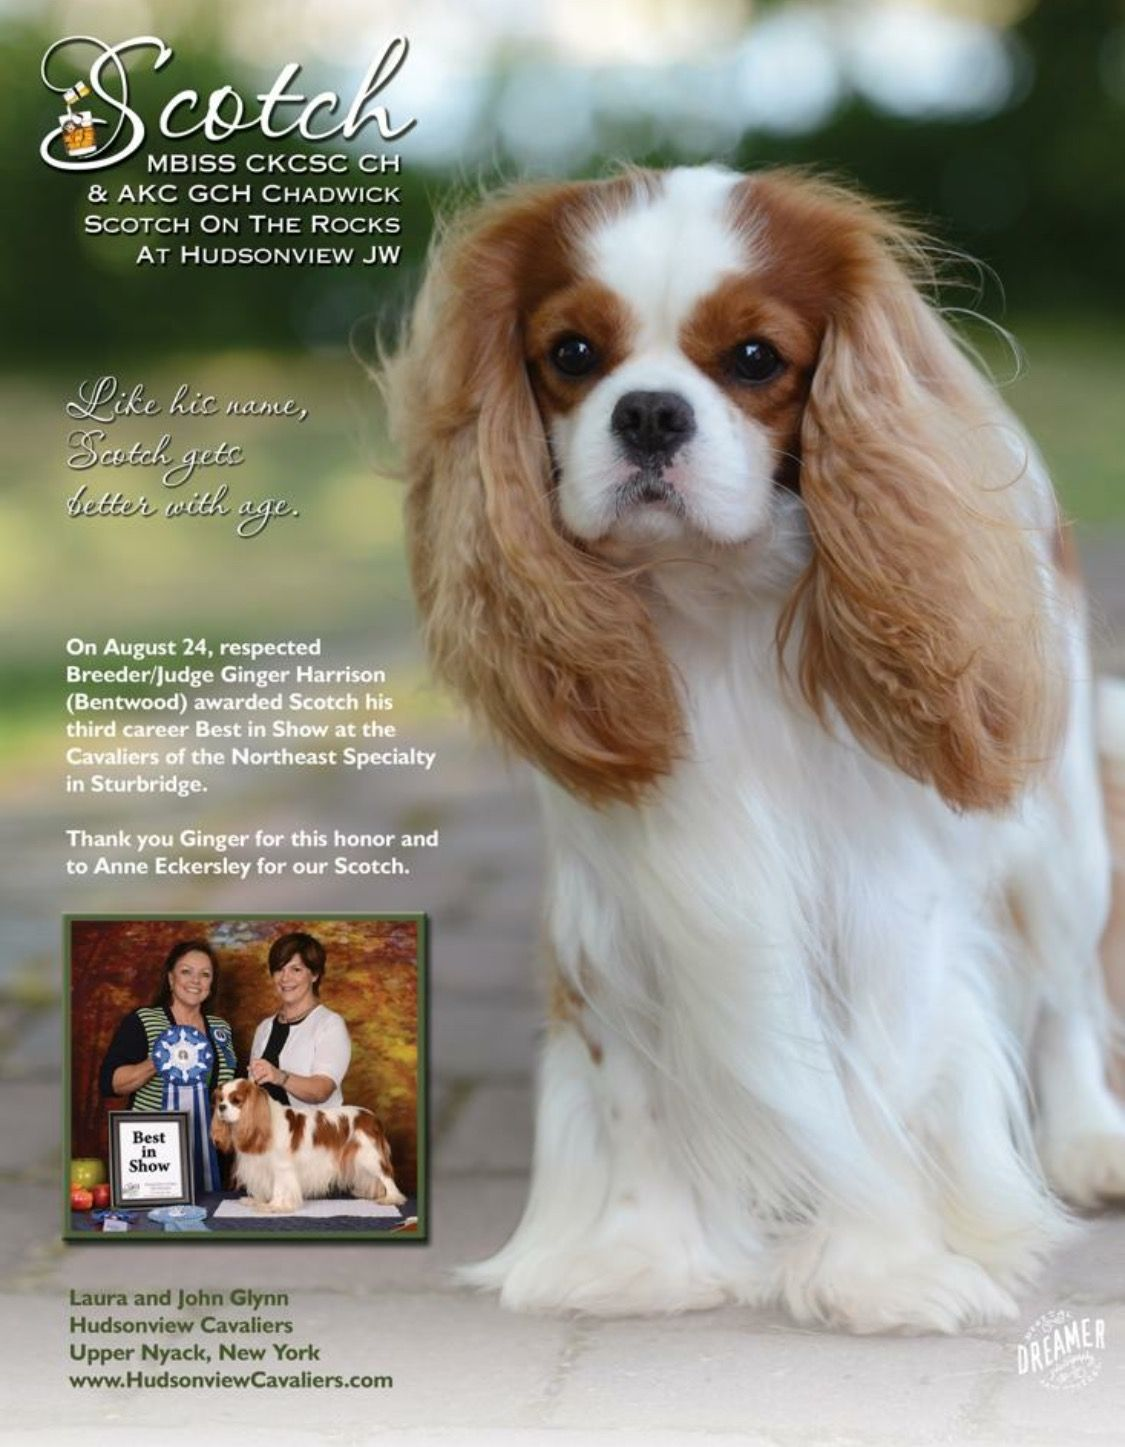 Pin On Cavalier King Charles Spaniels 1 Of 2